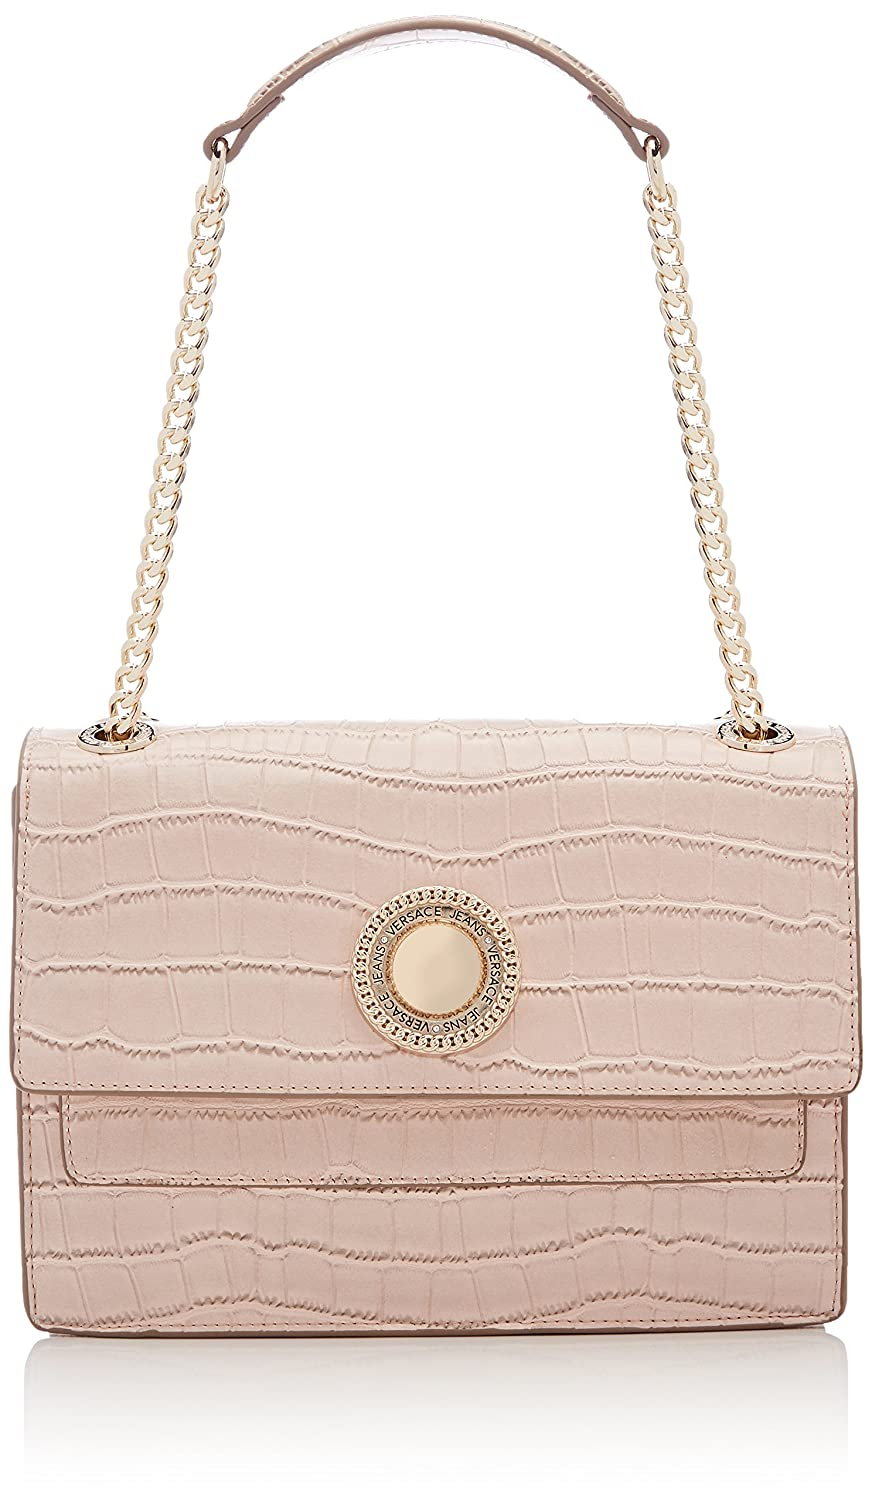 88b3f994b289 Amazon.com  Versace EE1VRBBO8 Light Pink Shoulder Bag for Womens  Shoes